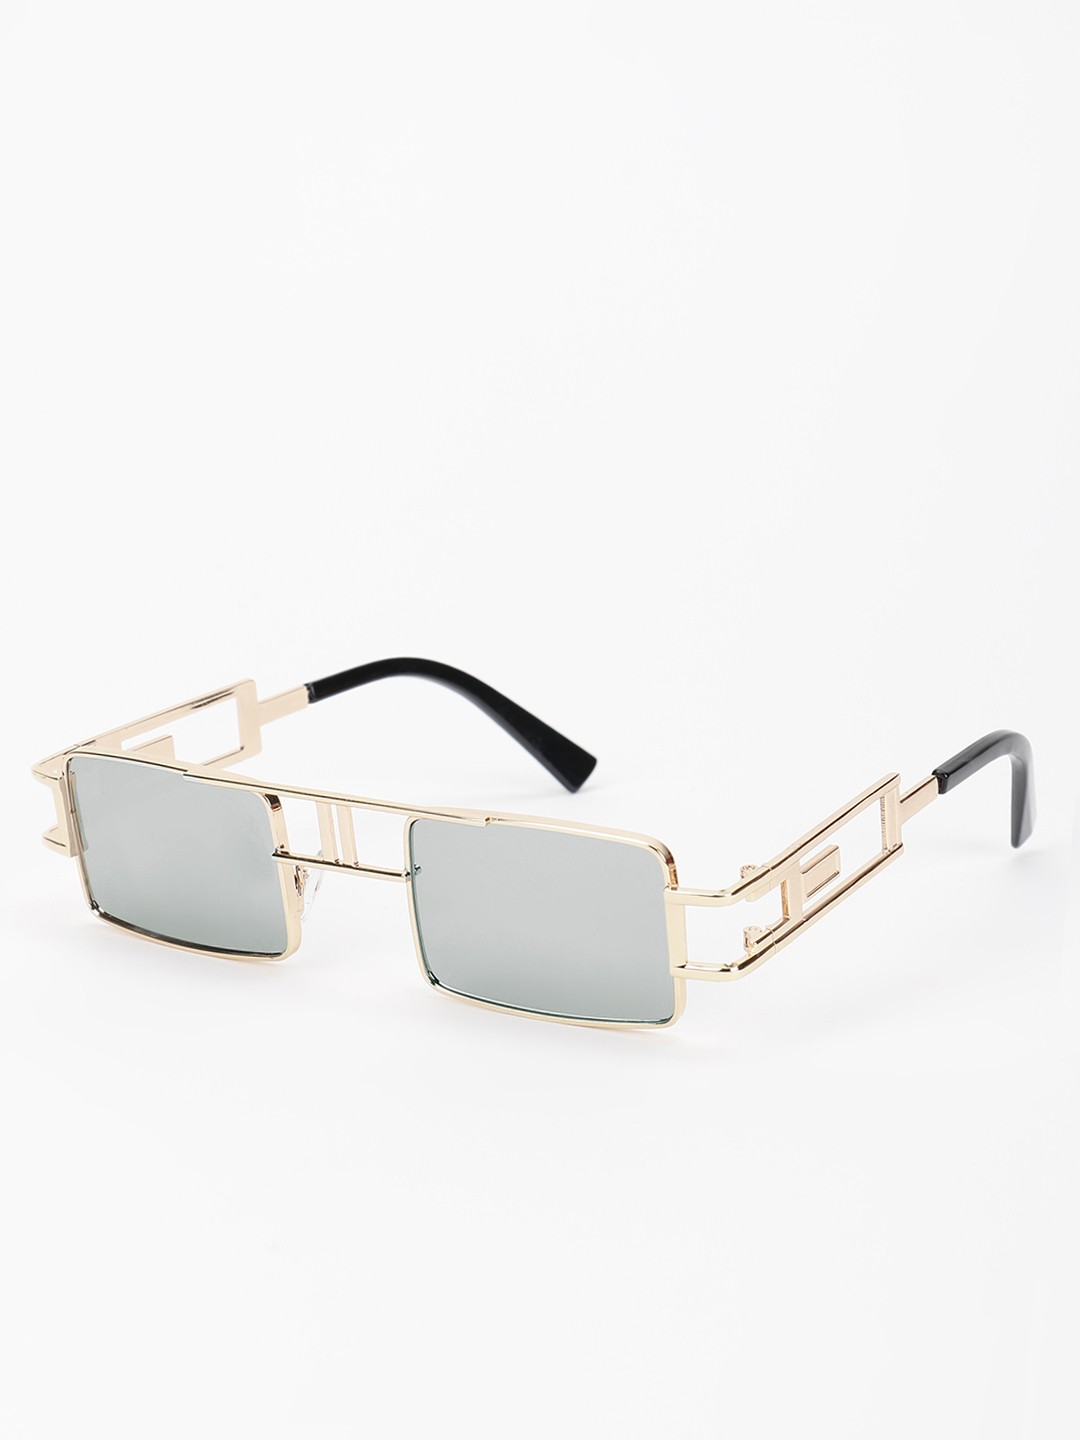 Pataaka Grey Metal Frame Square Sunglasses 1